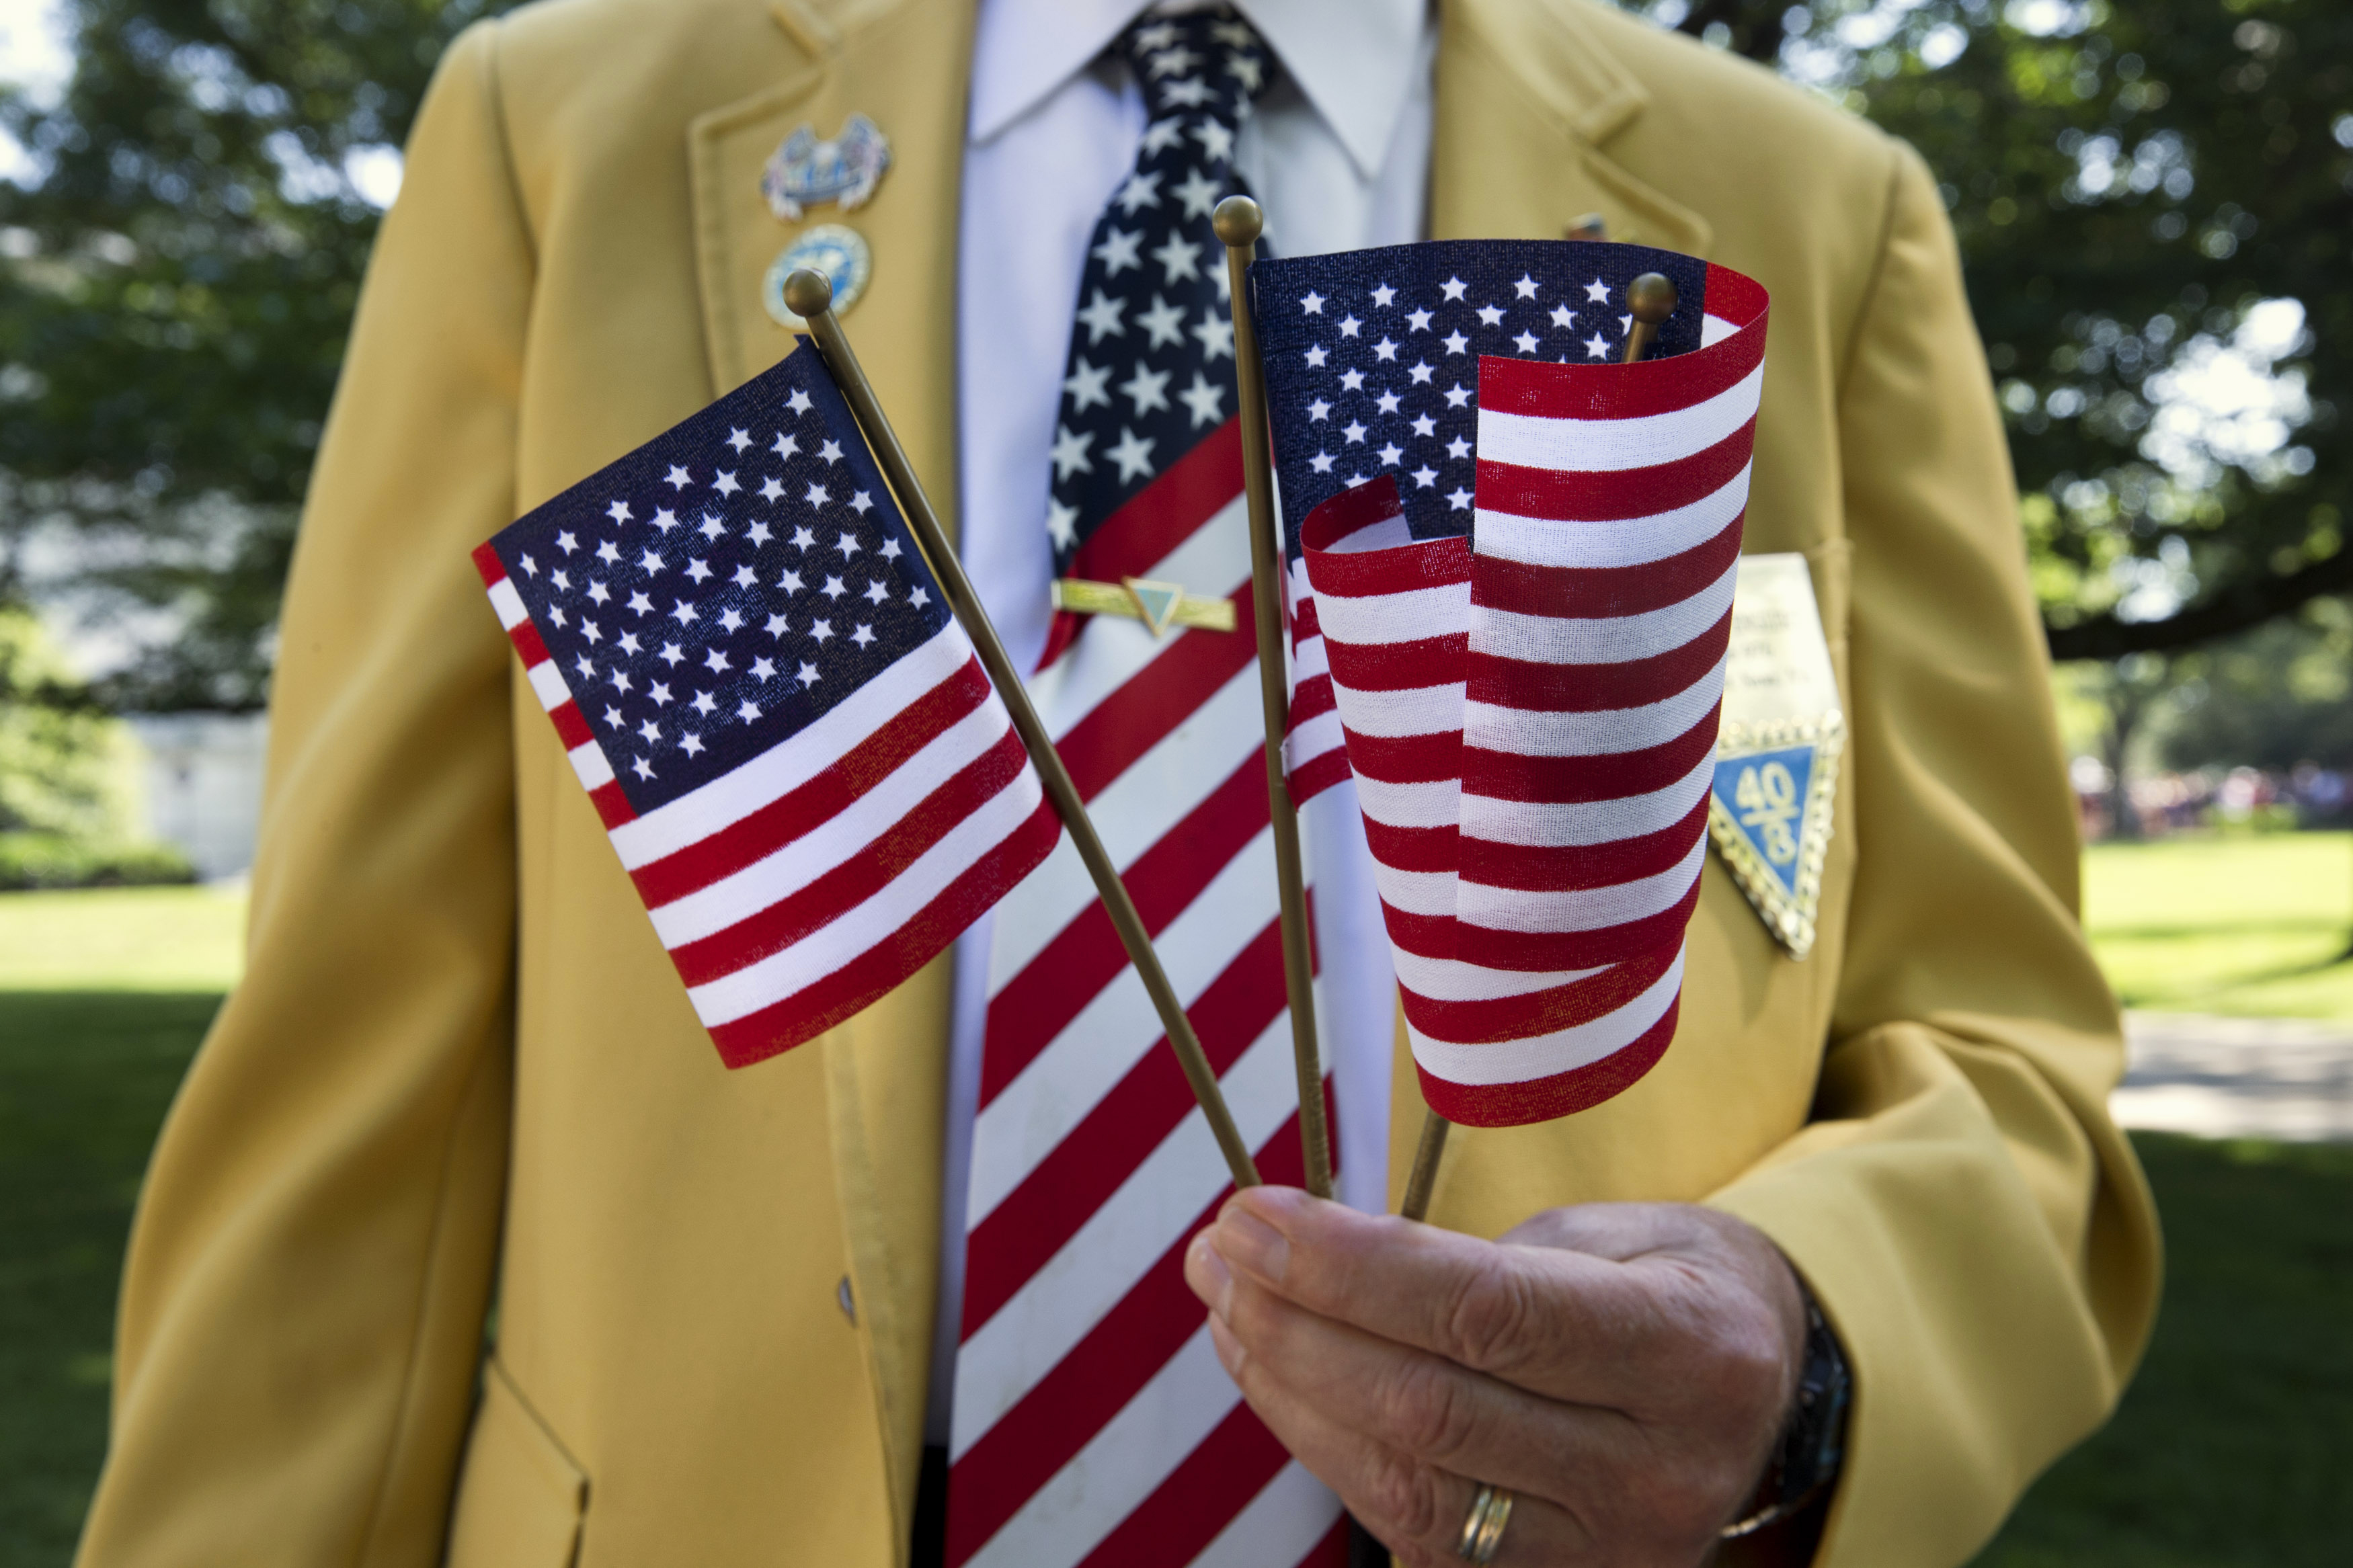 Navy veteran William Englert passes out U.S. flags to the crowd attending Memorial Day ceremonies at Arlington National Cemetery in Arlington, Va., Monday May 25, 2015.  (AP Photo/Jacquelyn Martin)